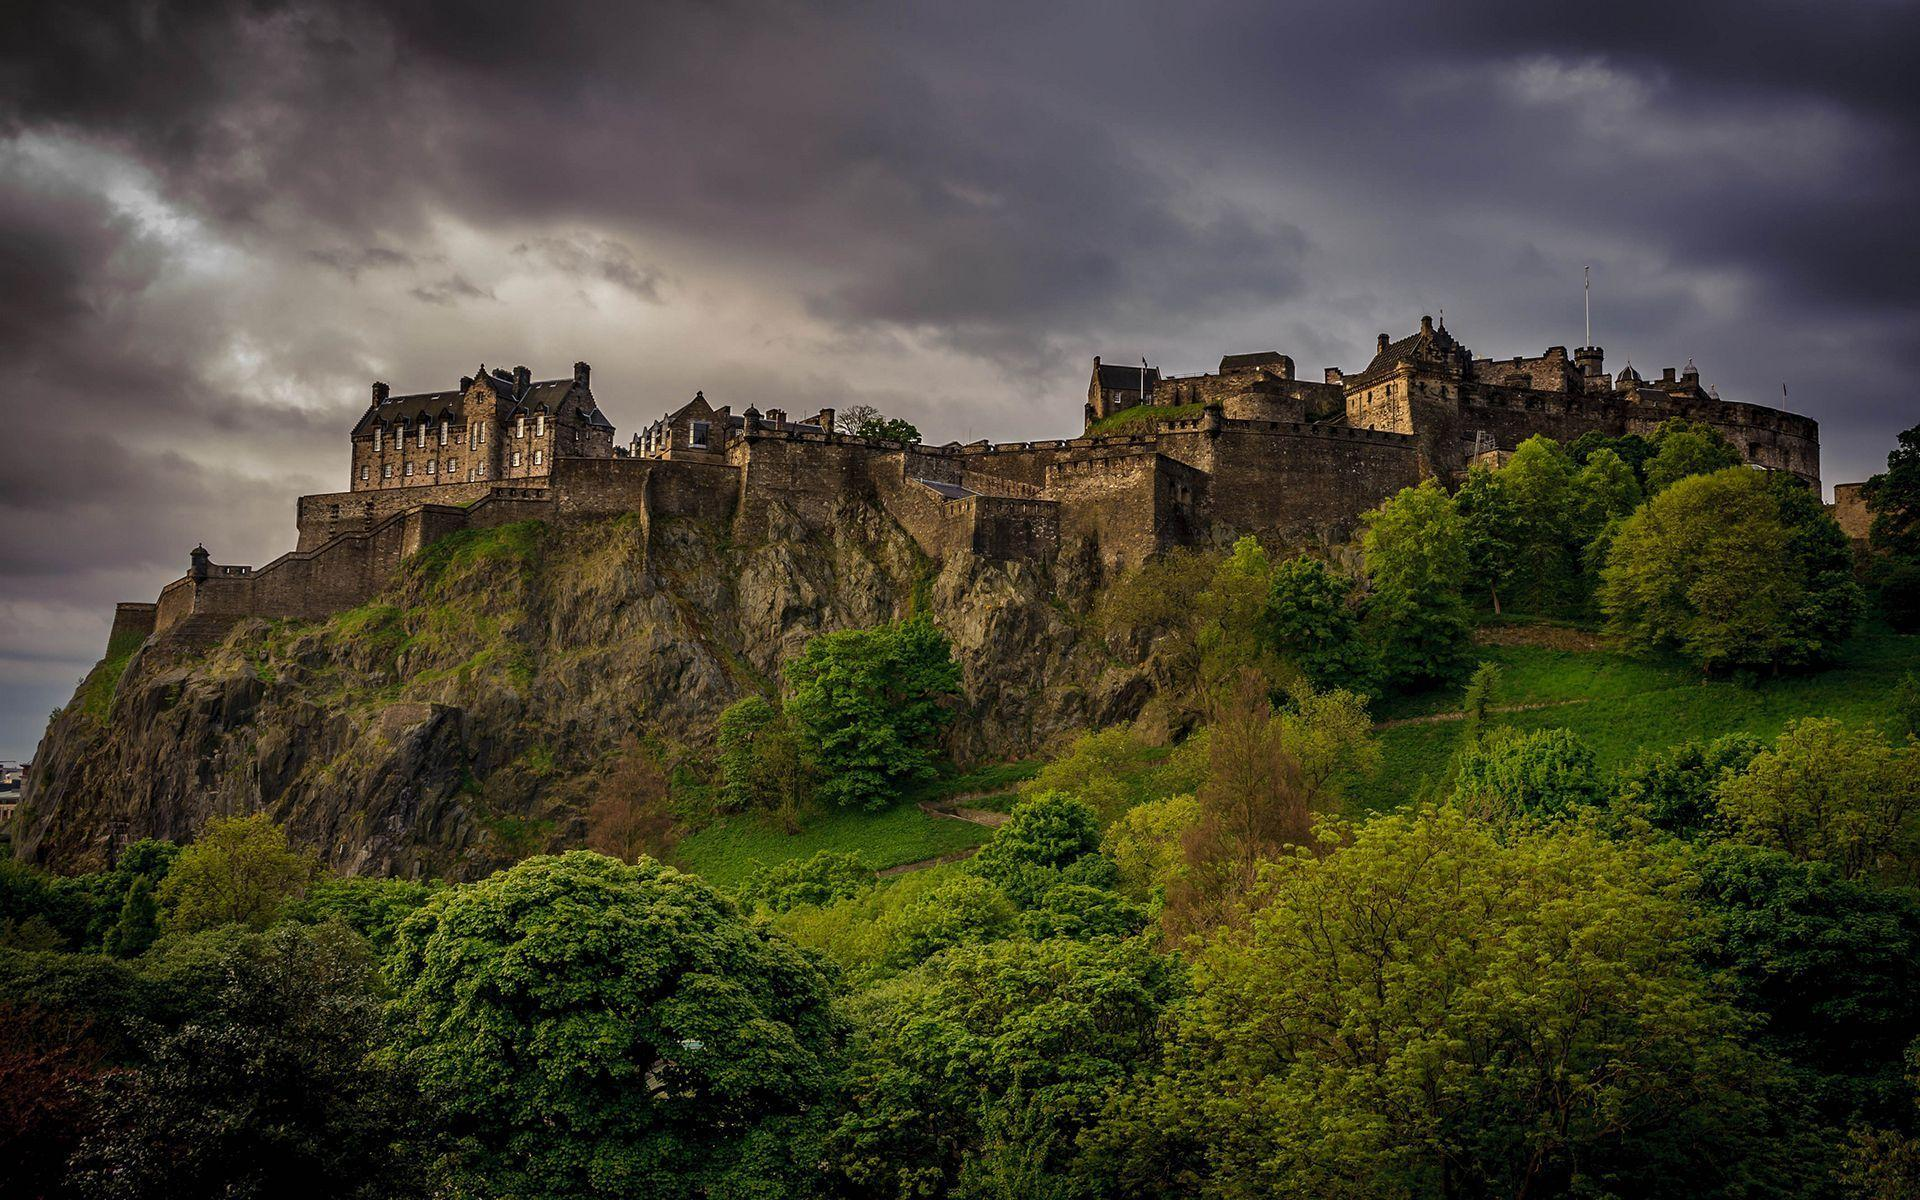 scotland-wallpaper-23.jpg